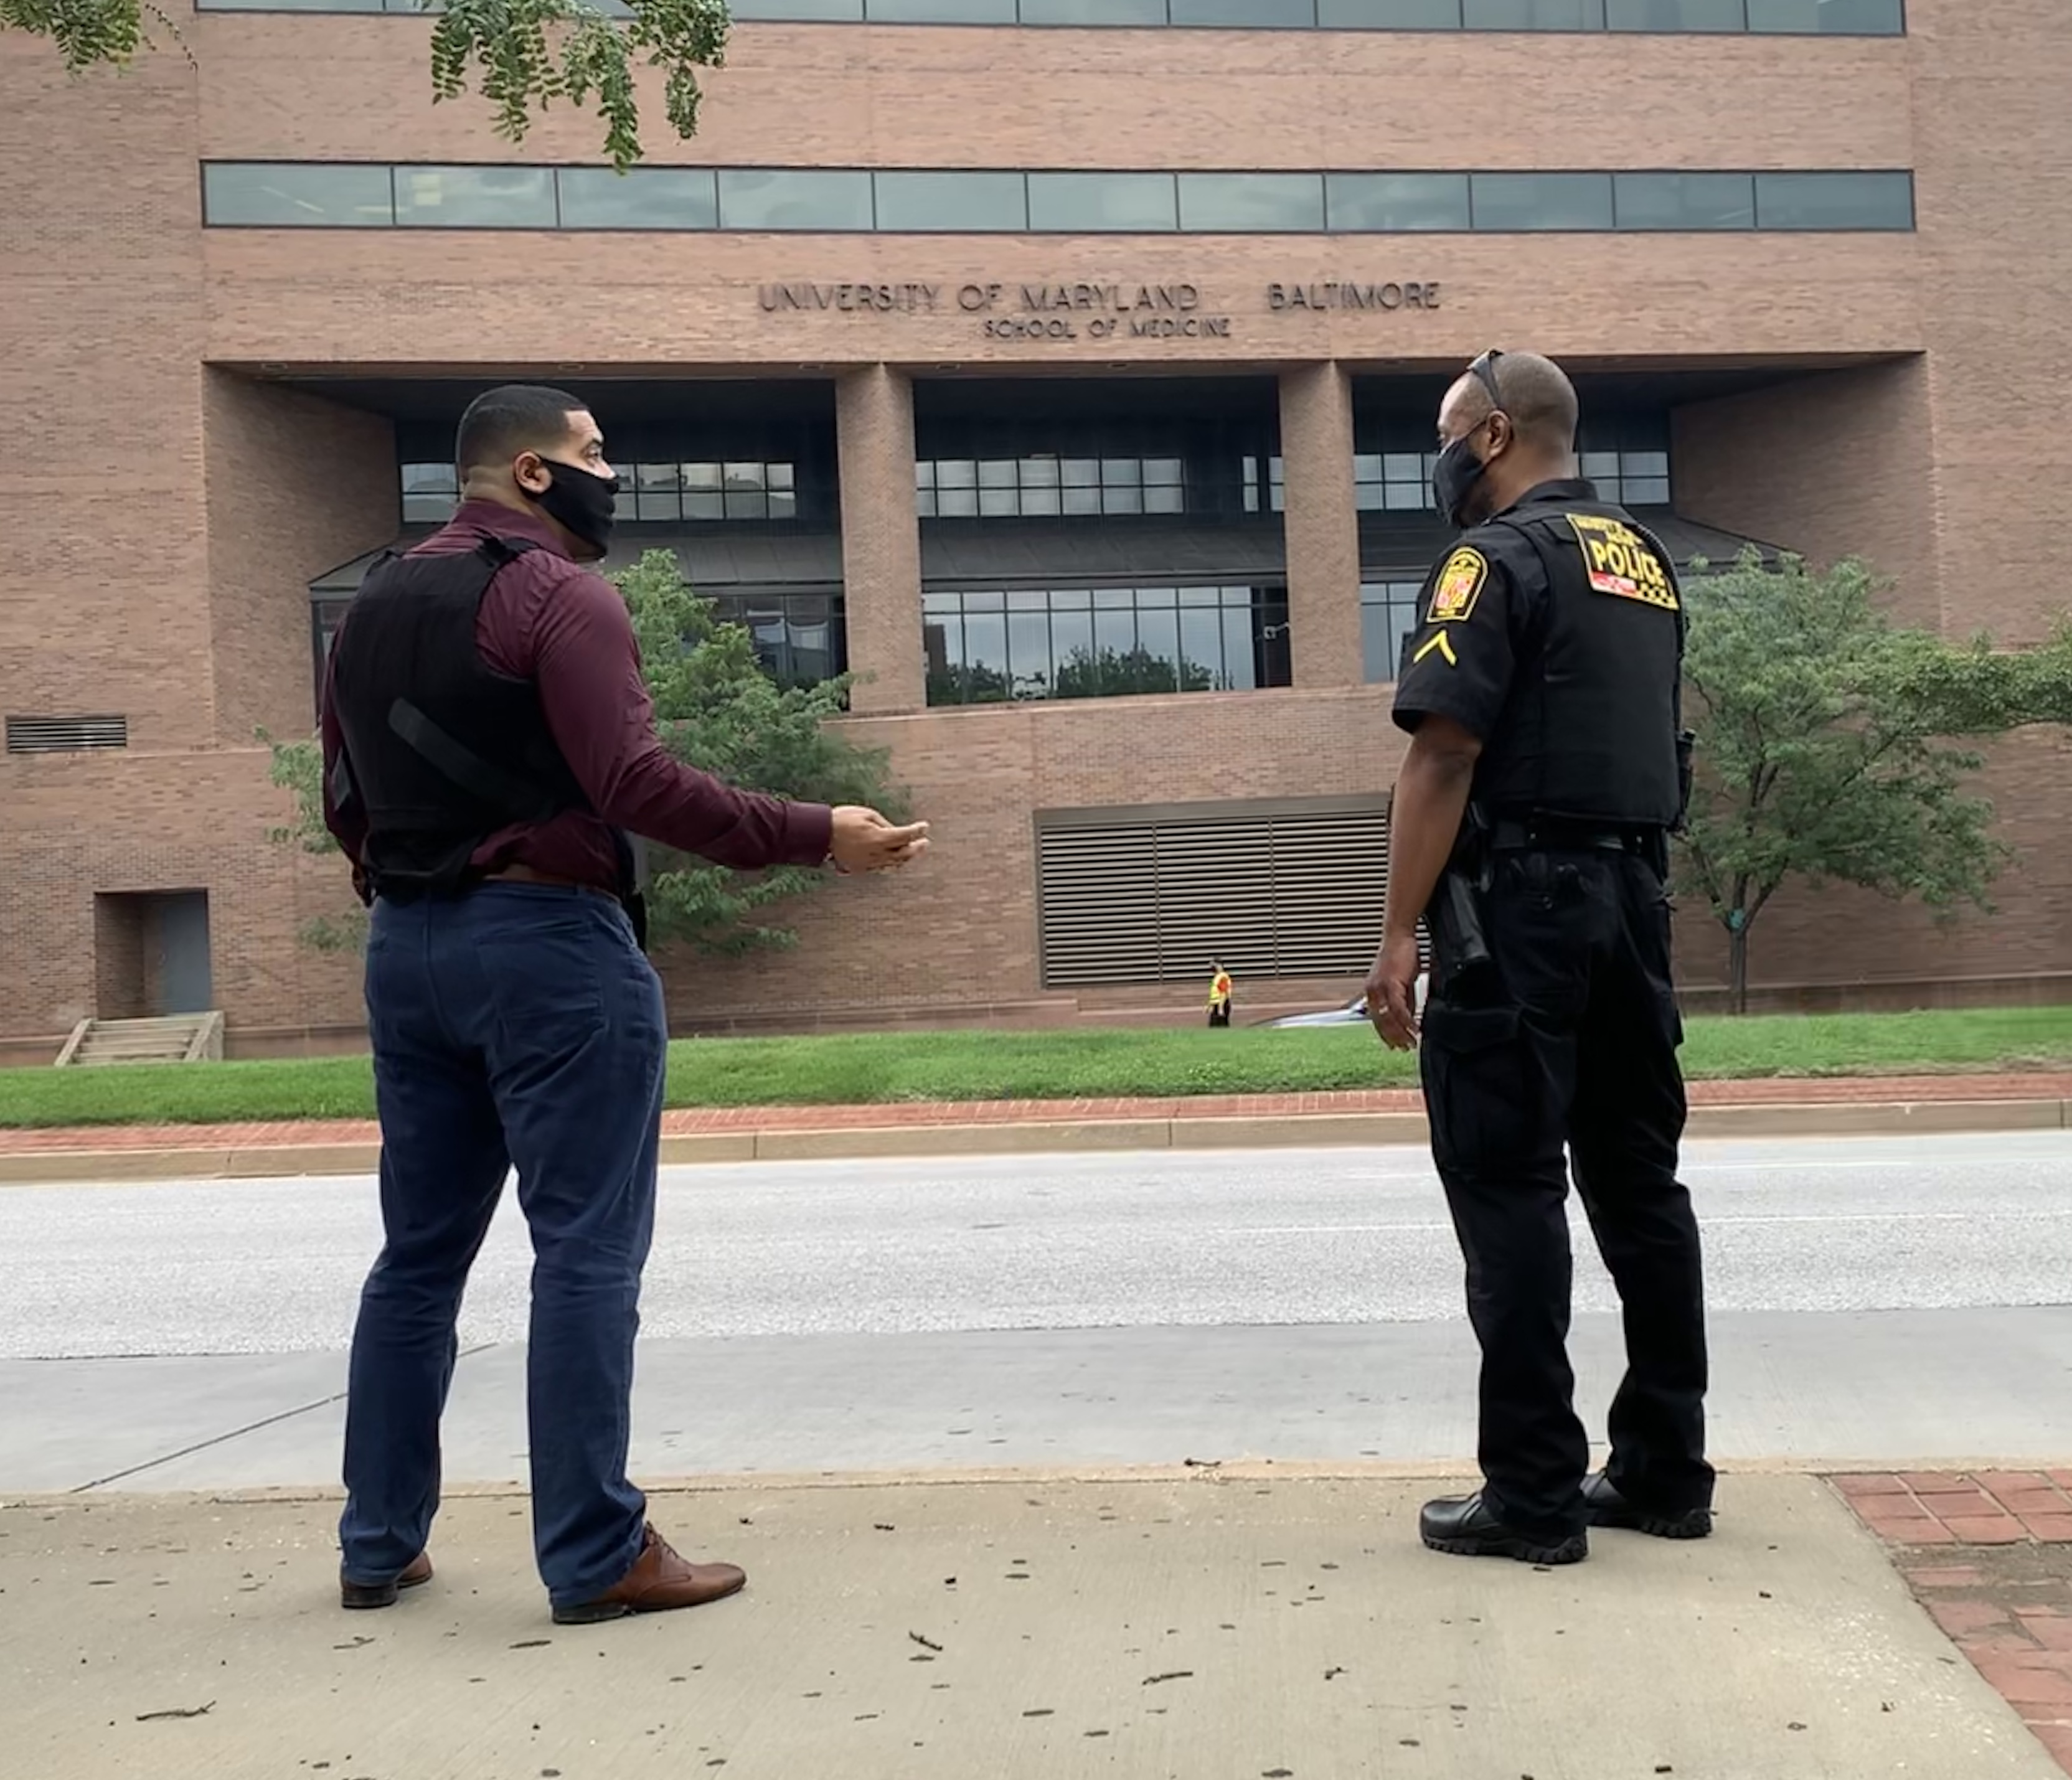 Jonathan Alfaro and Pfc. Yale Partlow stand socially distanced wearing masks, facing each other and talking. The University of Maryland, Baltimore School of Medicine building is shown behind them.